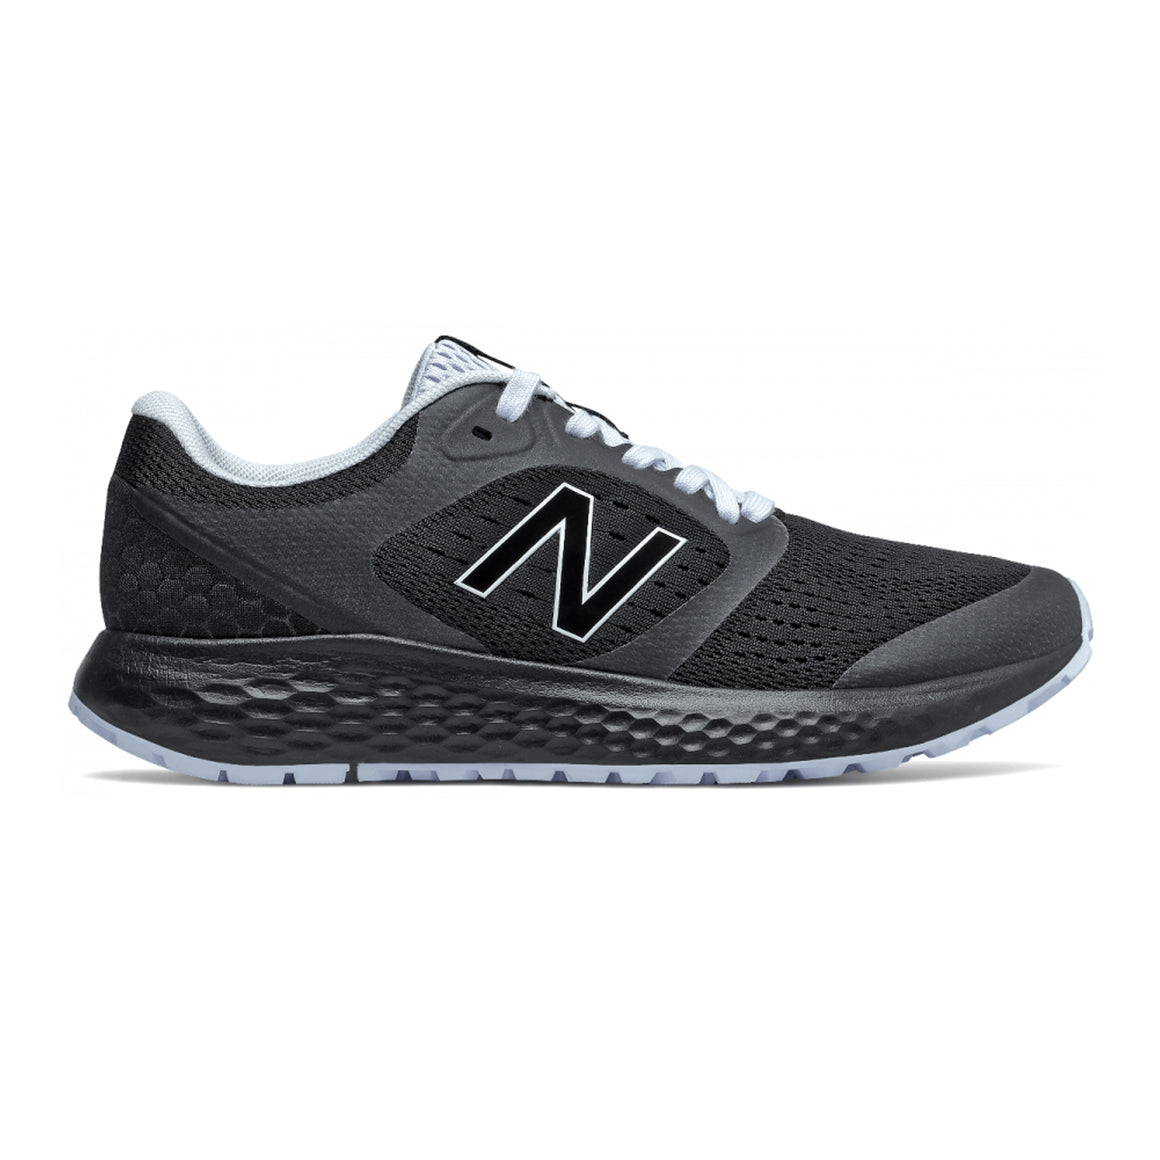 520 Running Shoe for Women in Black and Charcoal